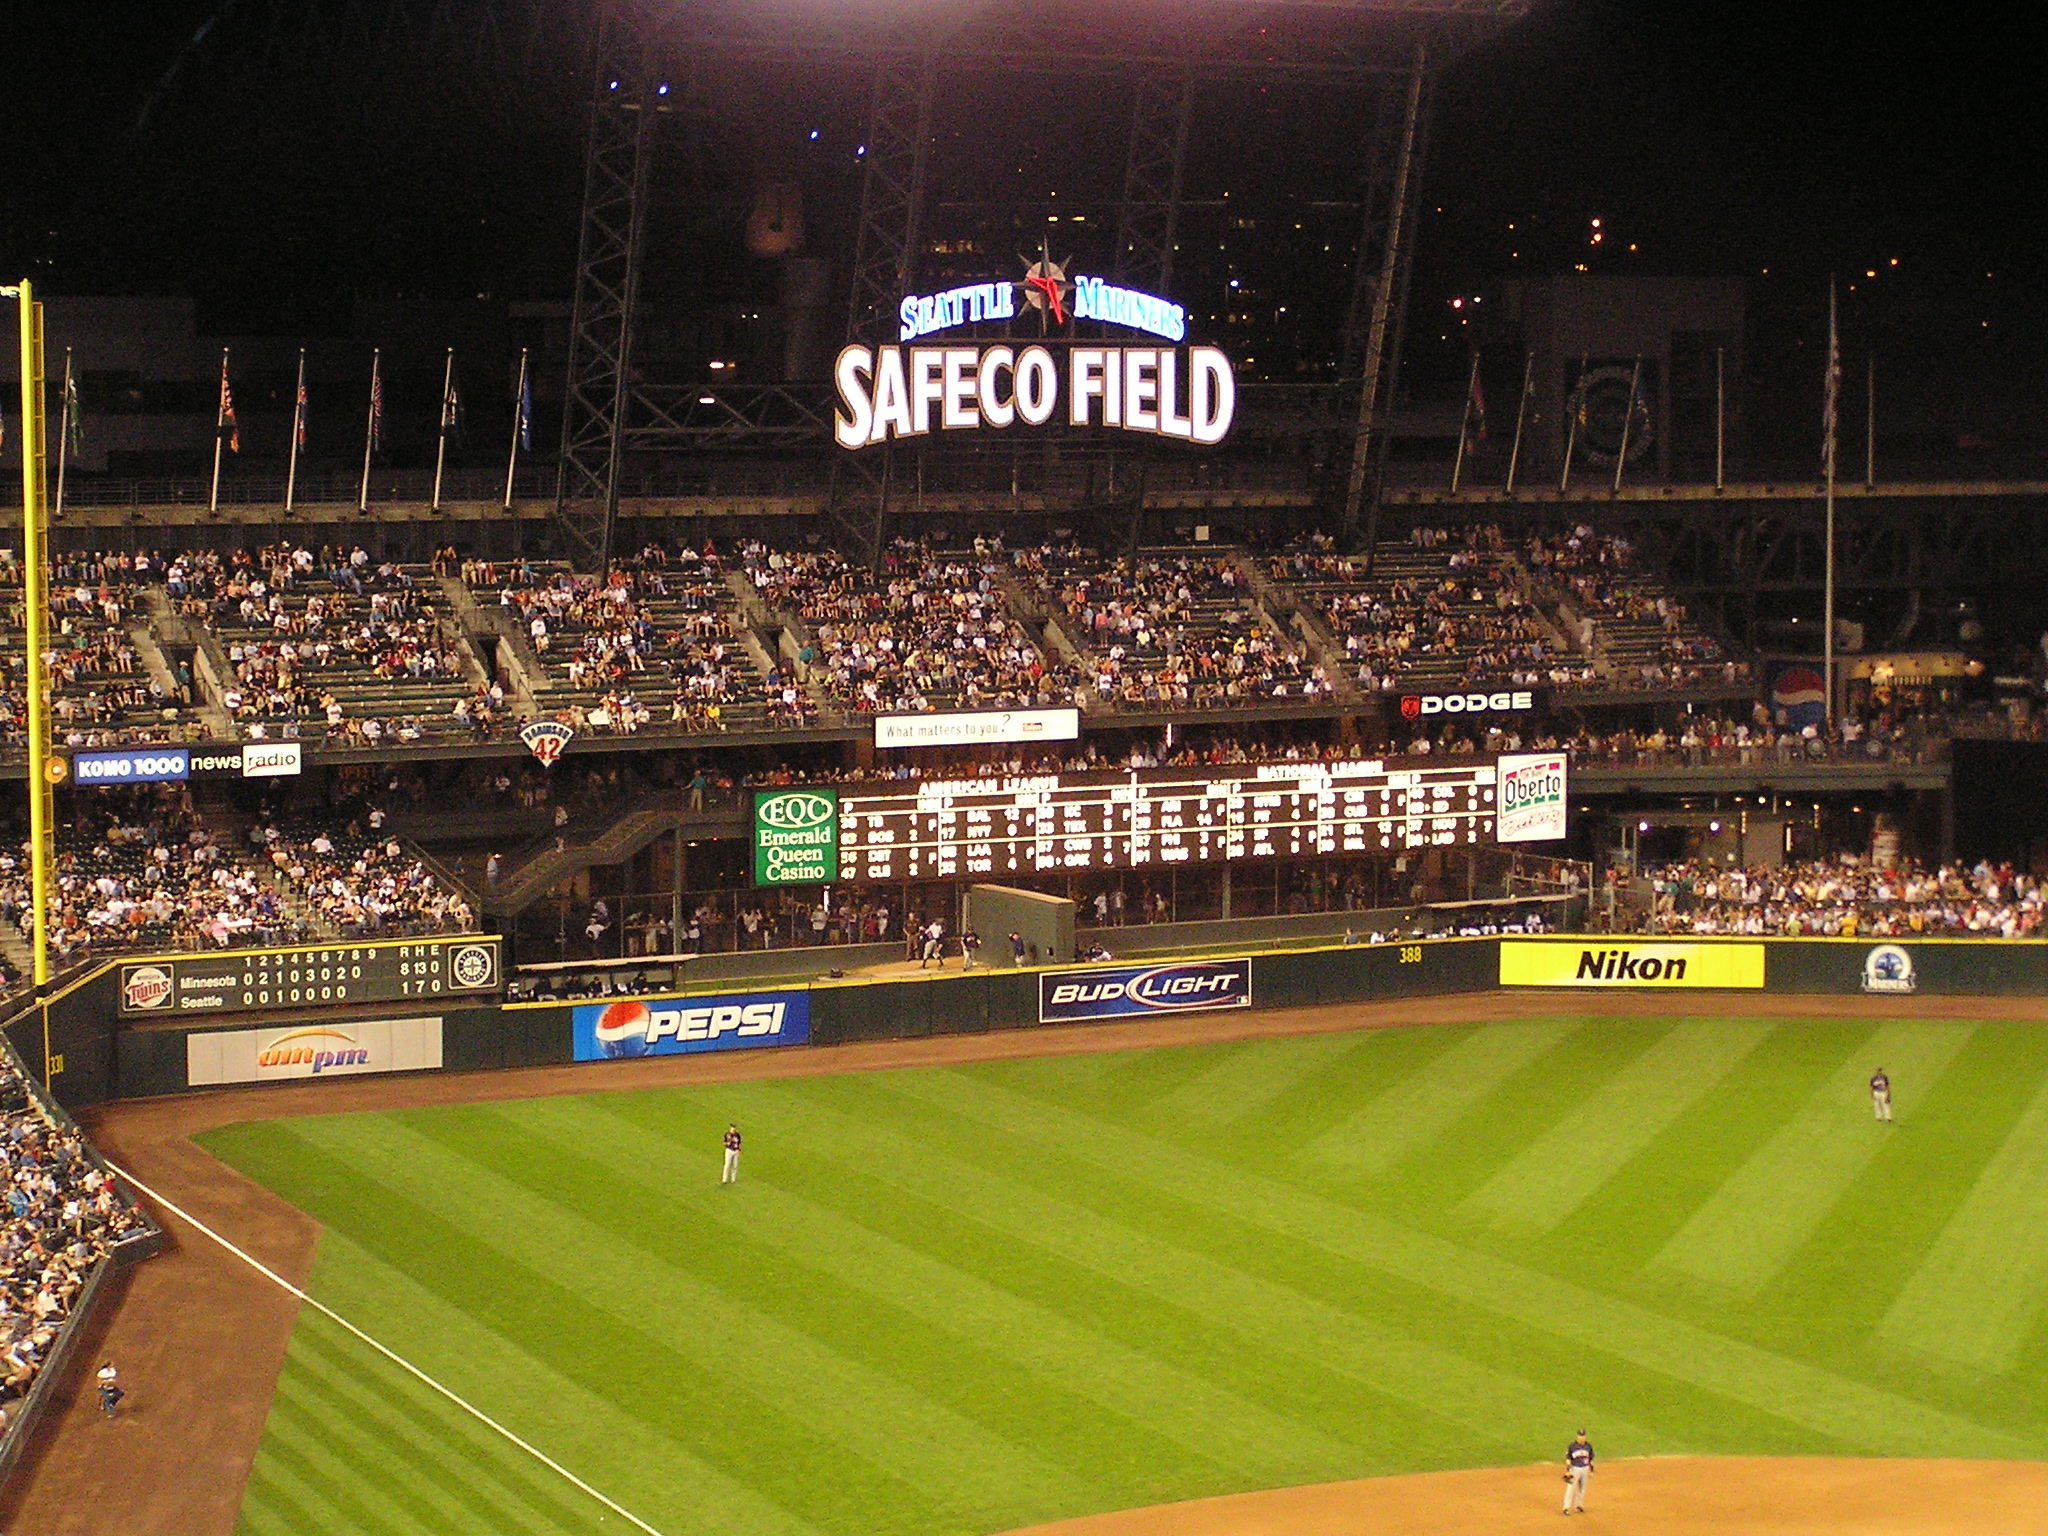 Out of town Board - Safeco Field